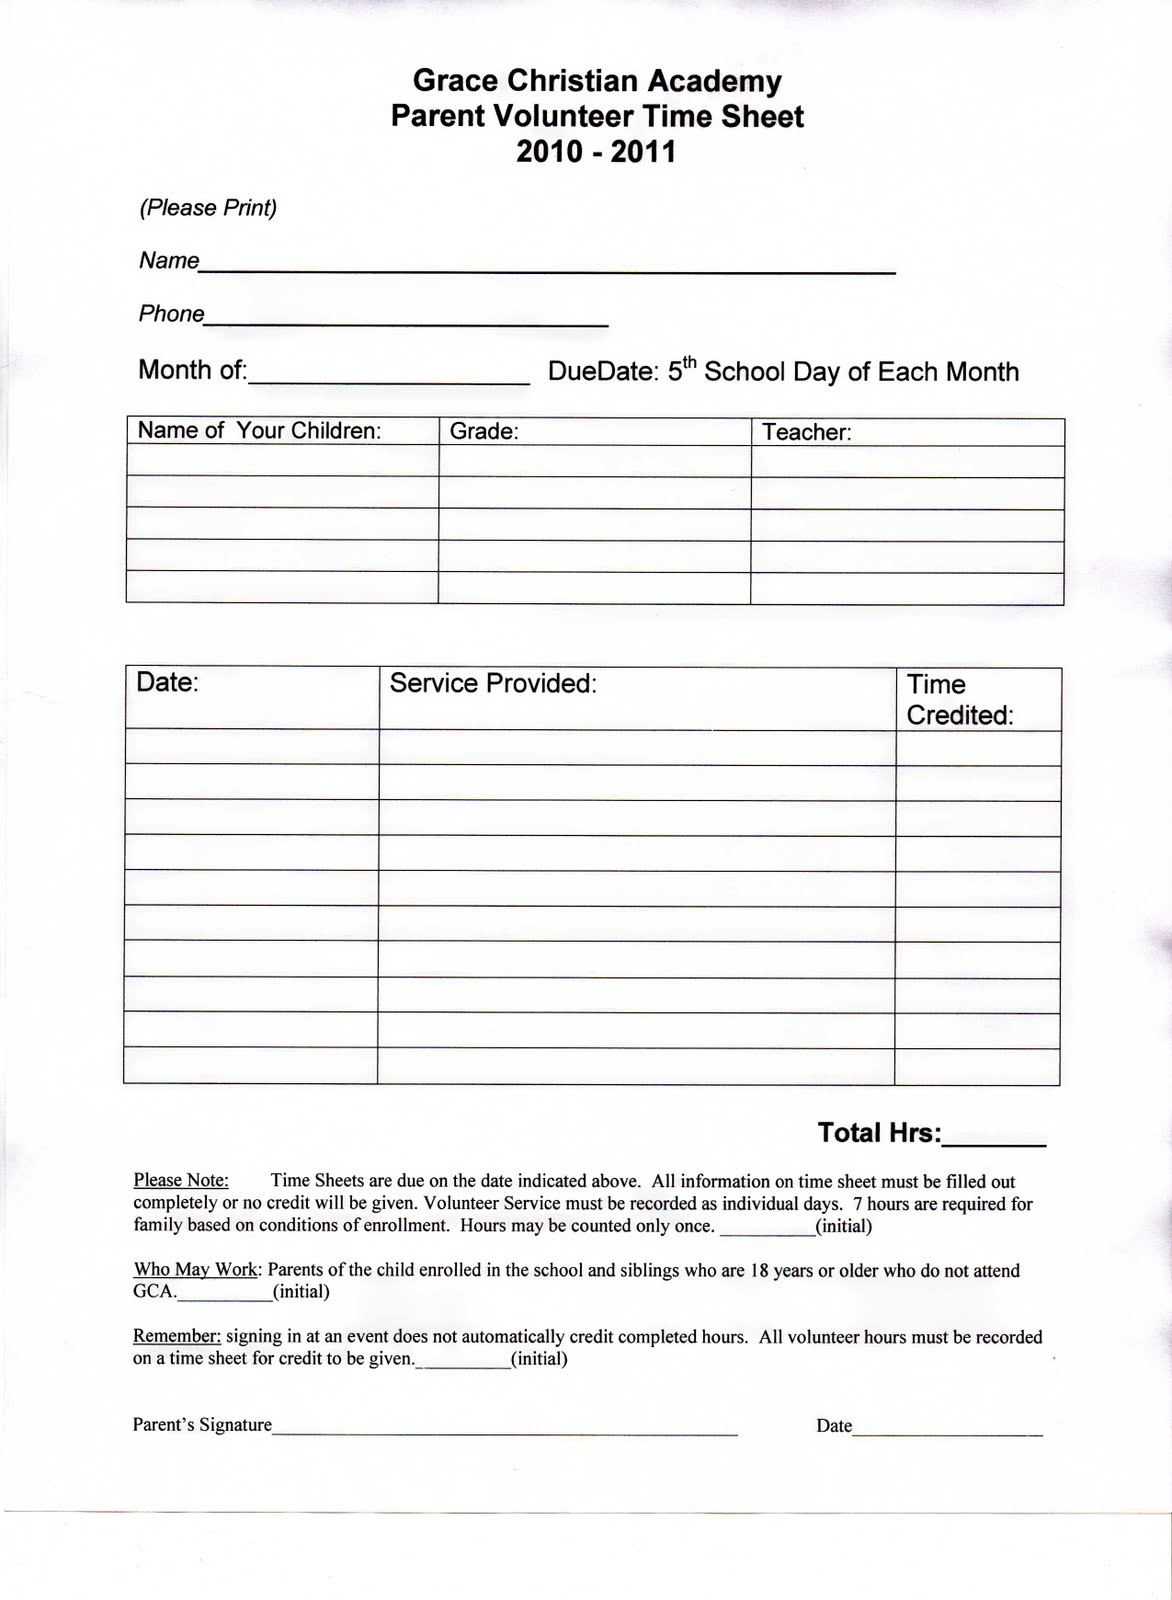 Grace Christian Academy Parent Volunteer Hours Amp Form